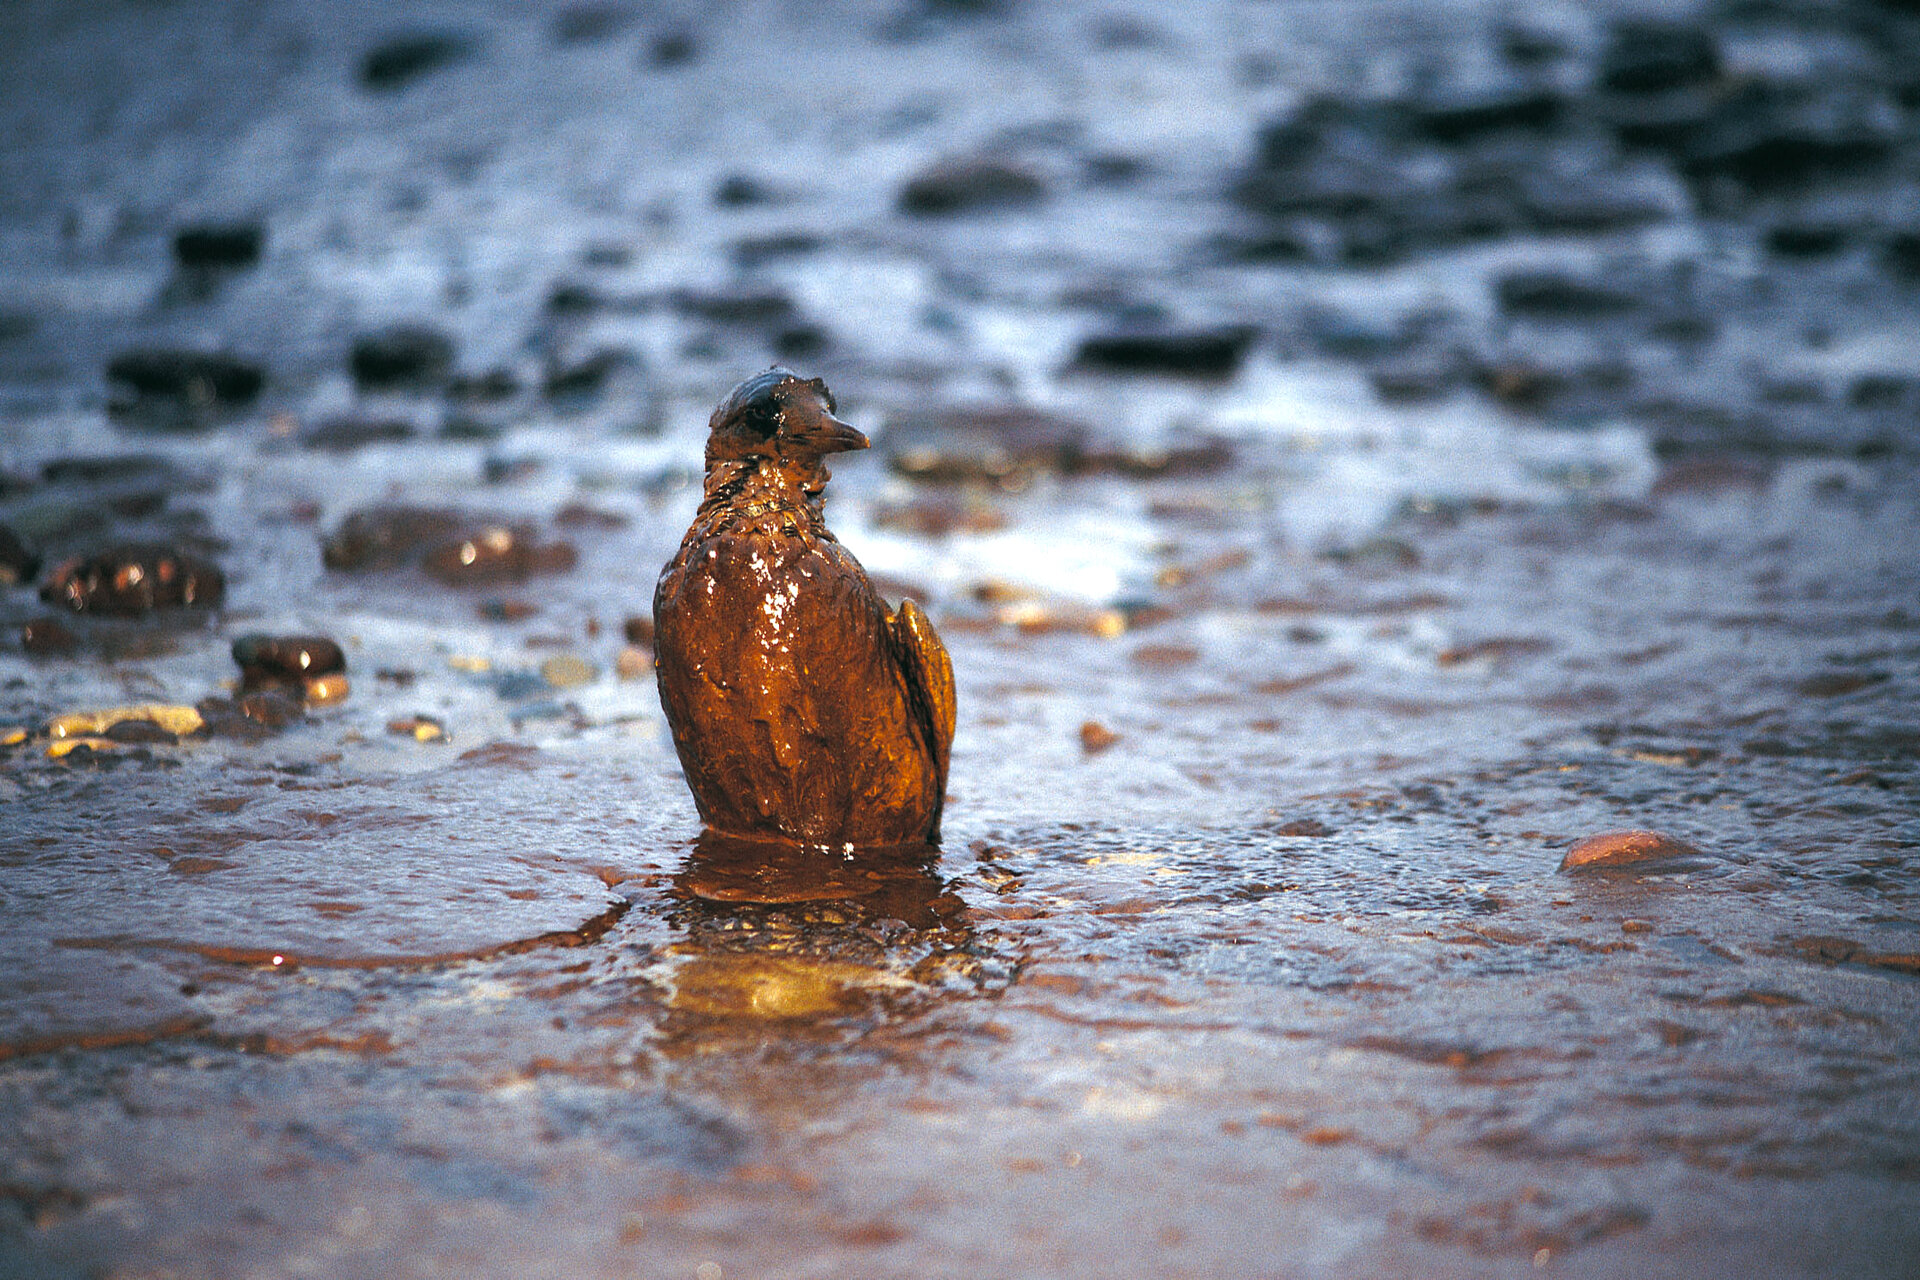 Oil spills can affect wildlife on land and at sea